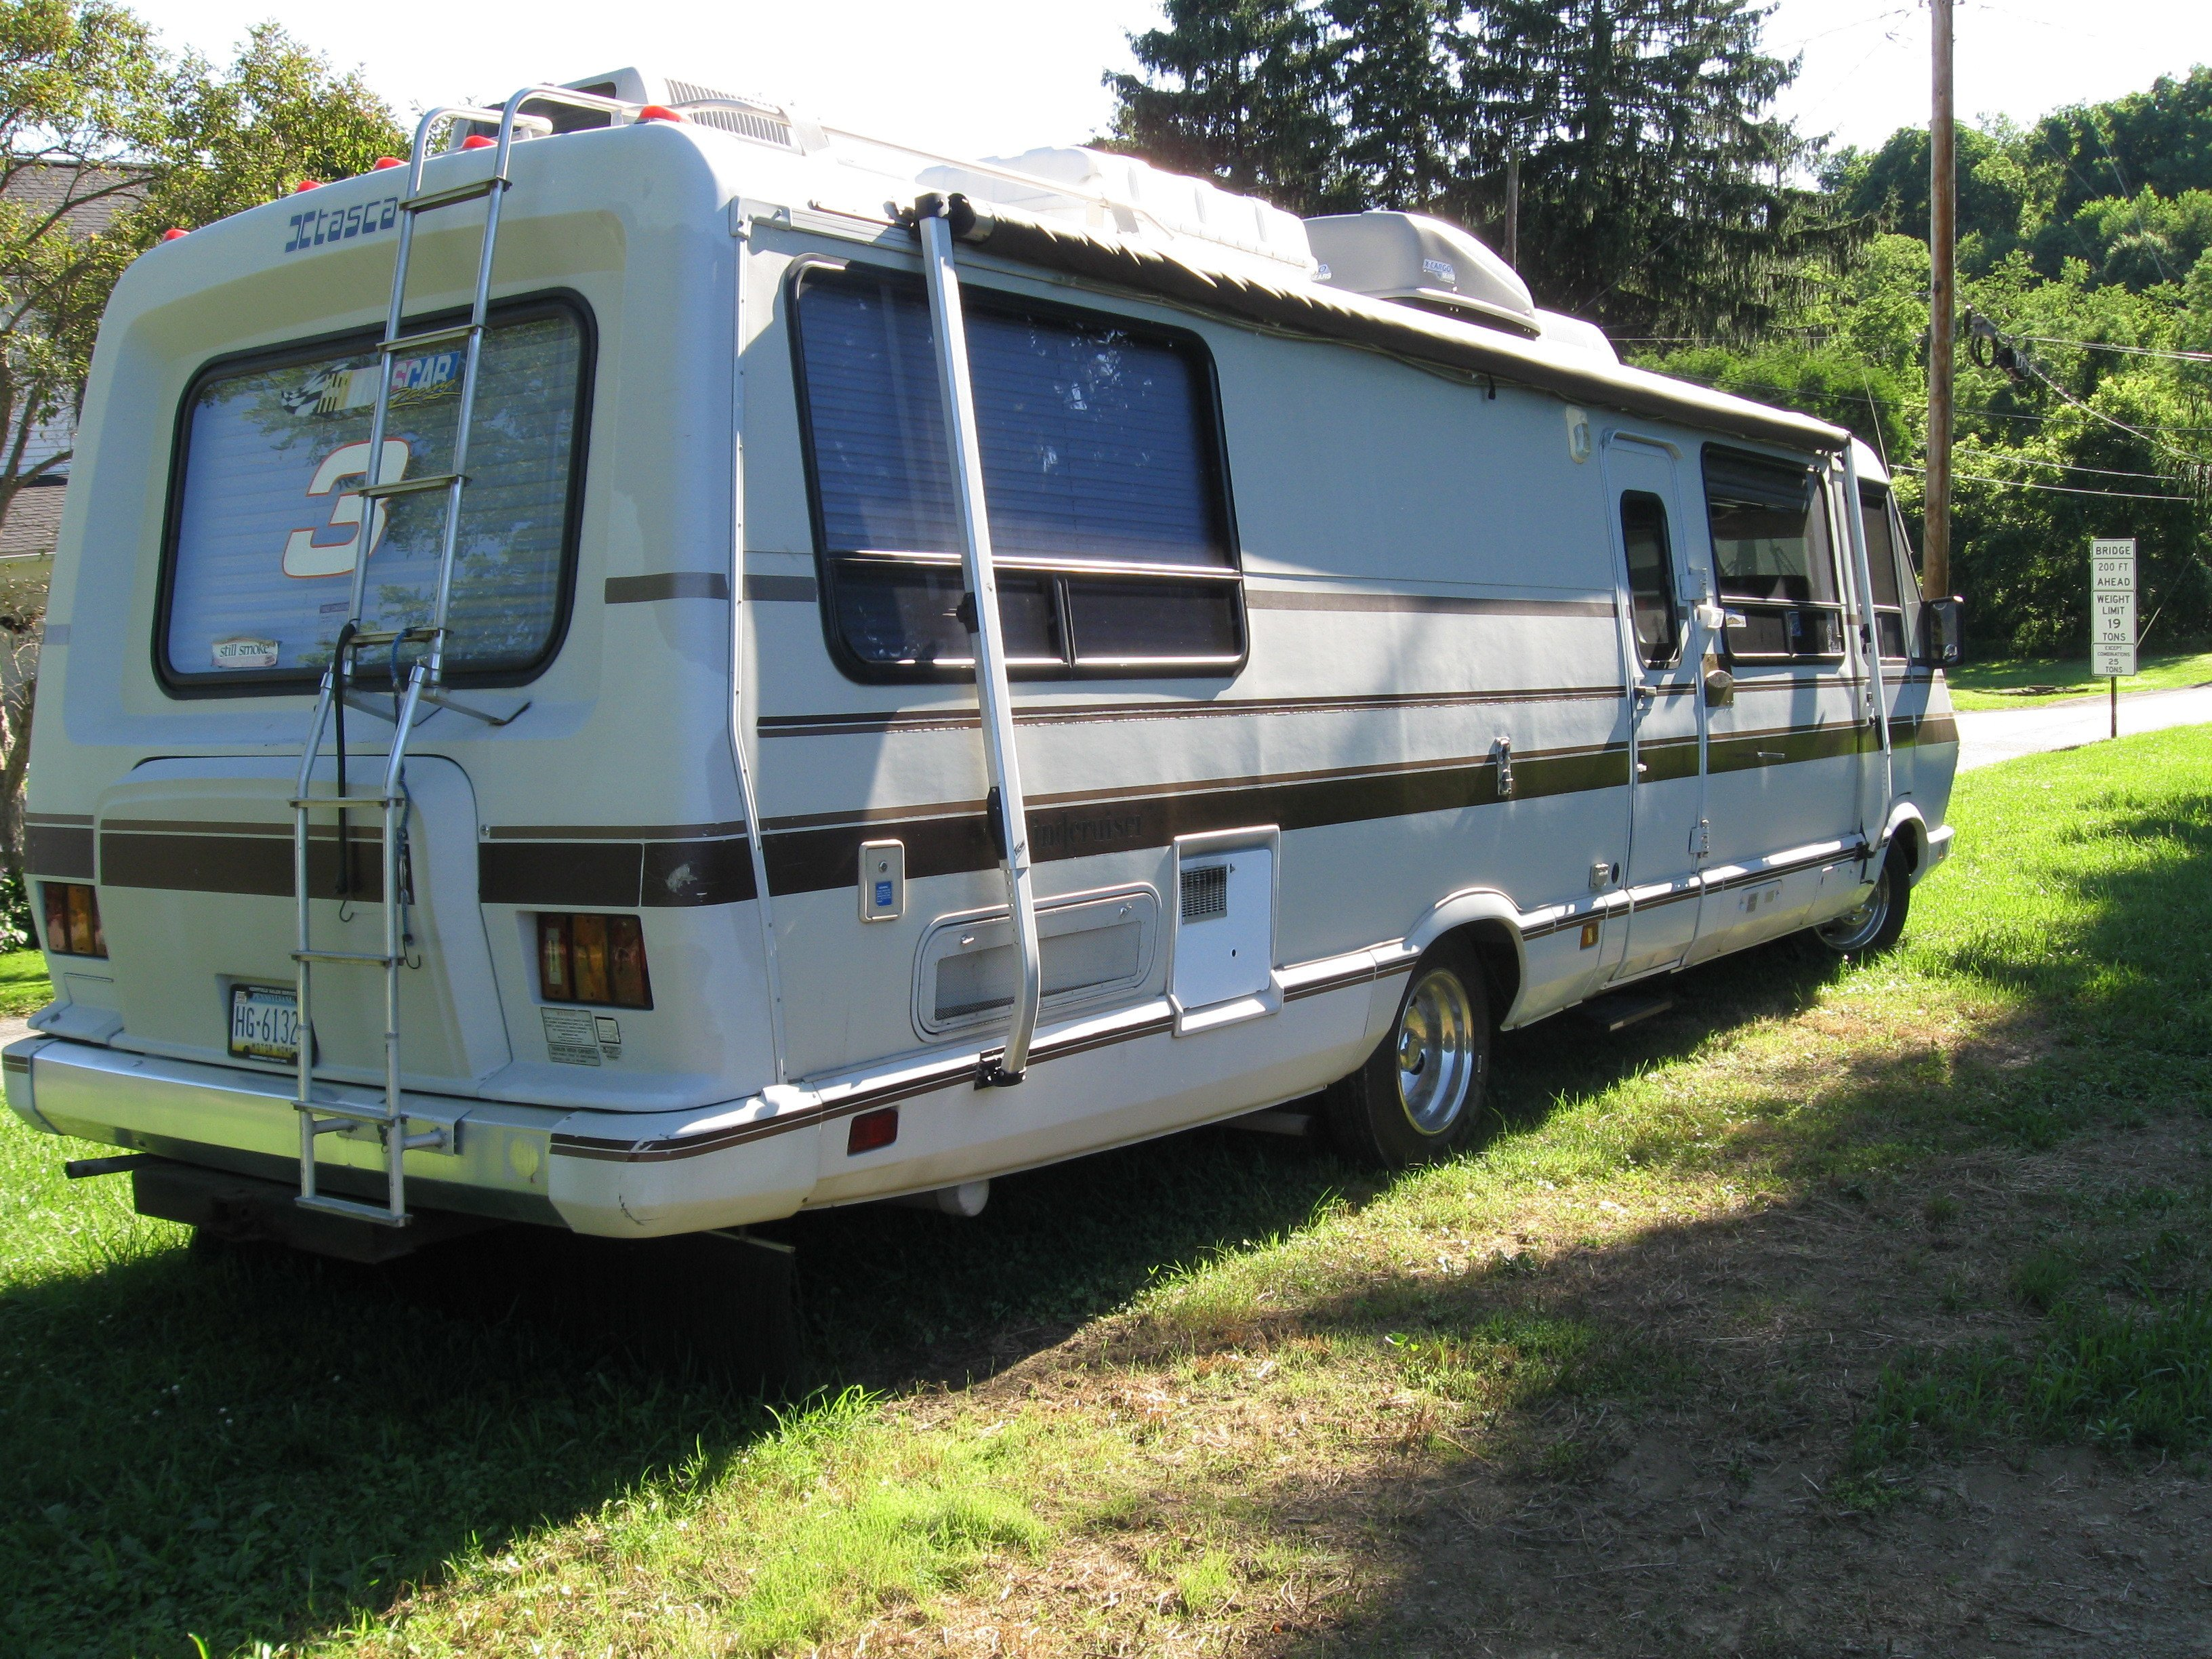 1987 Allegro Motorhome Wiring Diagram Schematics Winnebago Chieftain Tiffin Www Topsimages Com 2001